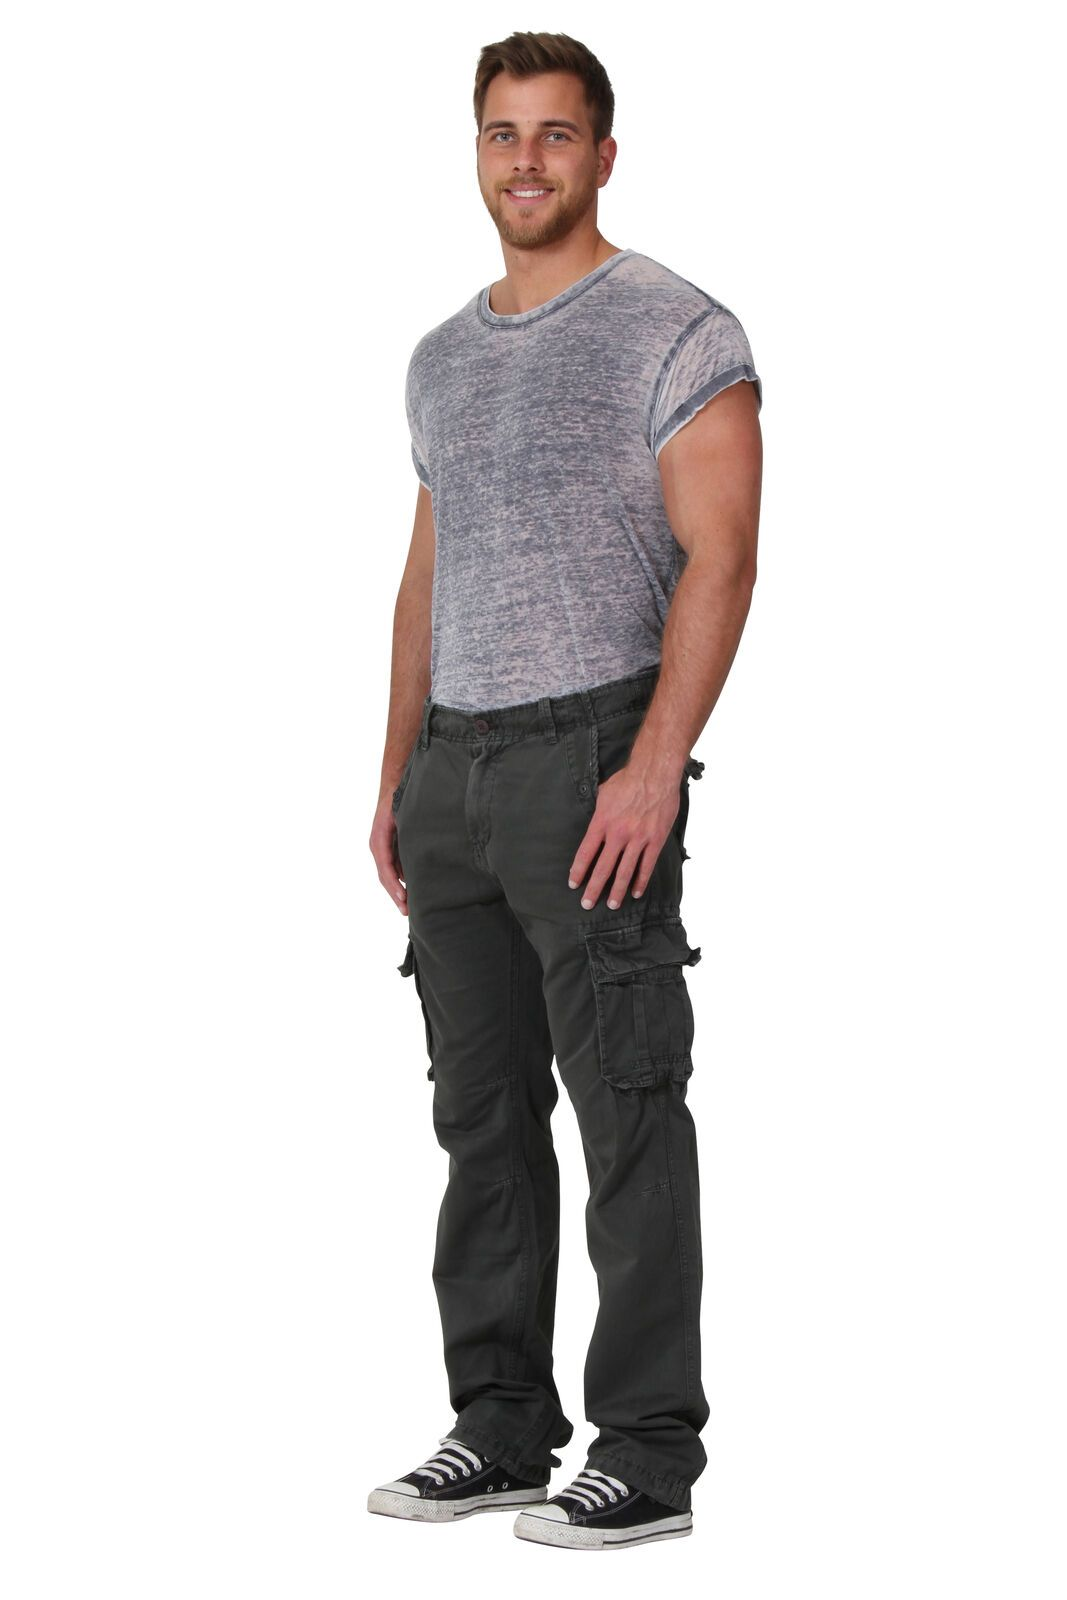 Angled front-side view of 'Aaron' style, casual cotton mix cargo trousers in olive.